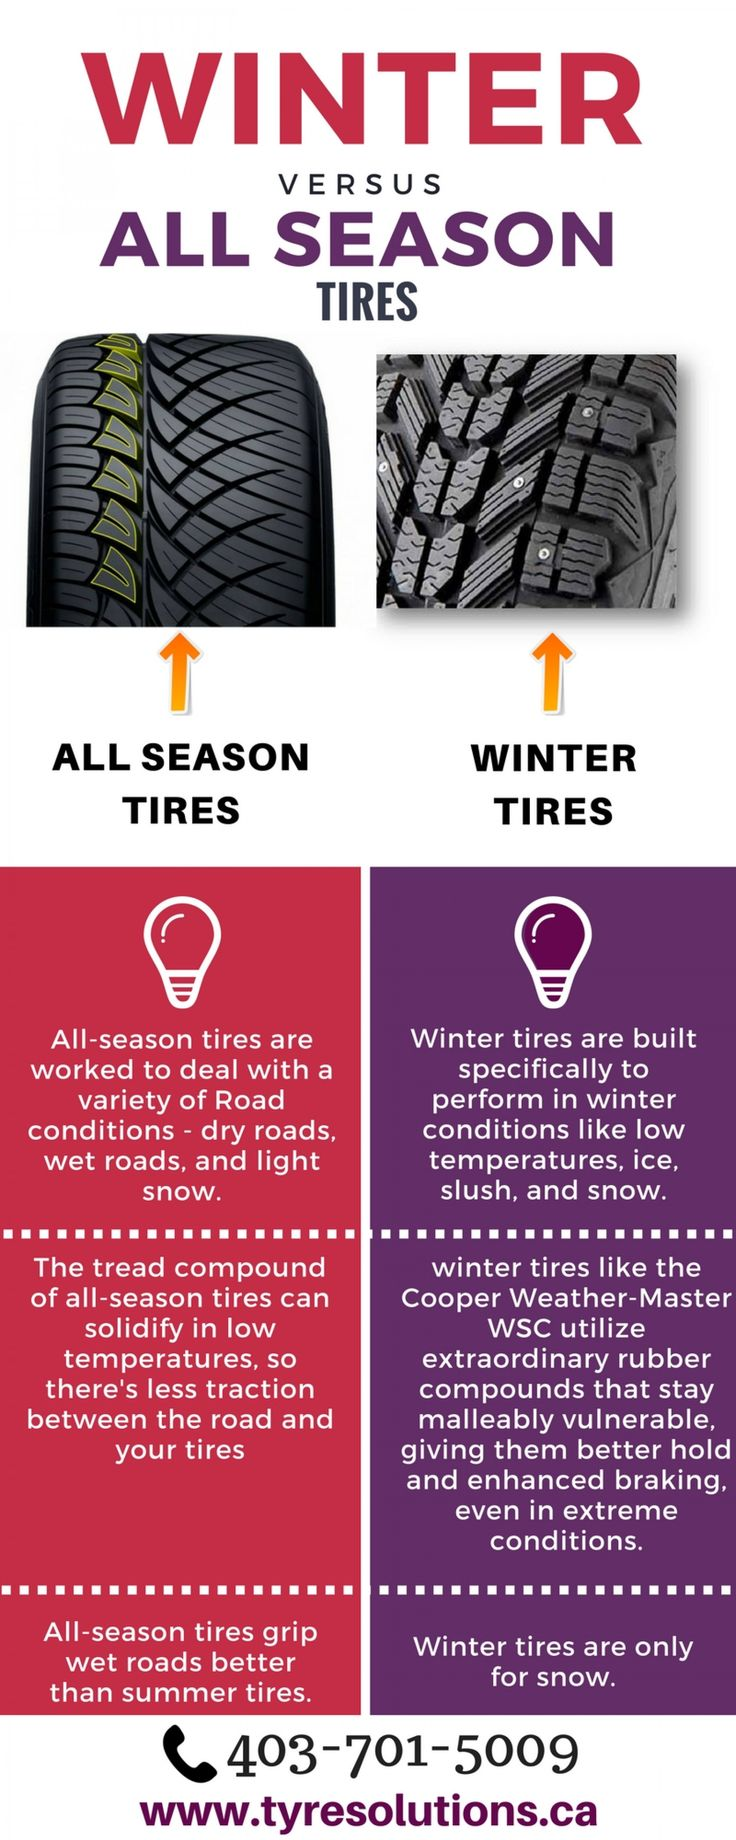 Difference between Winter and All Season Tires Infographic